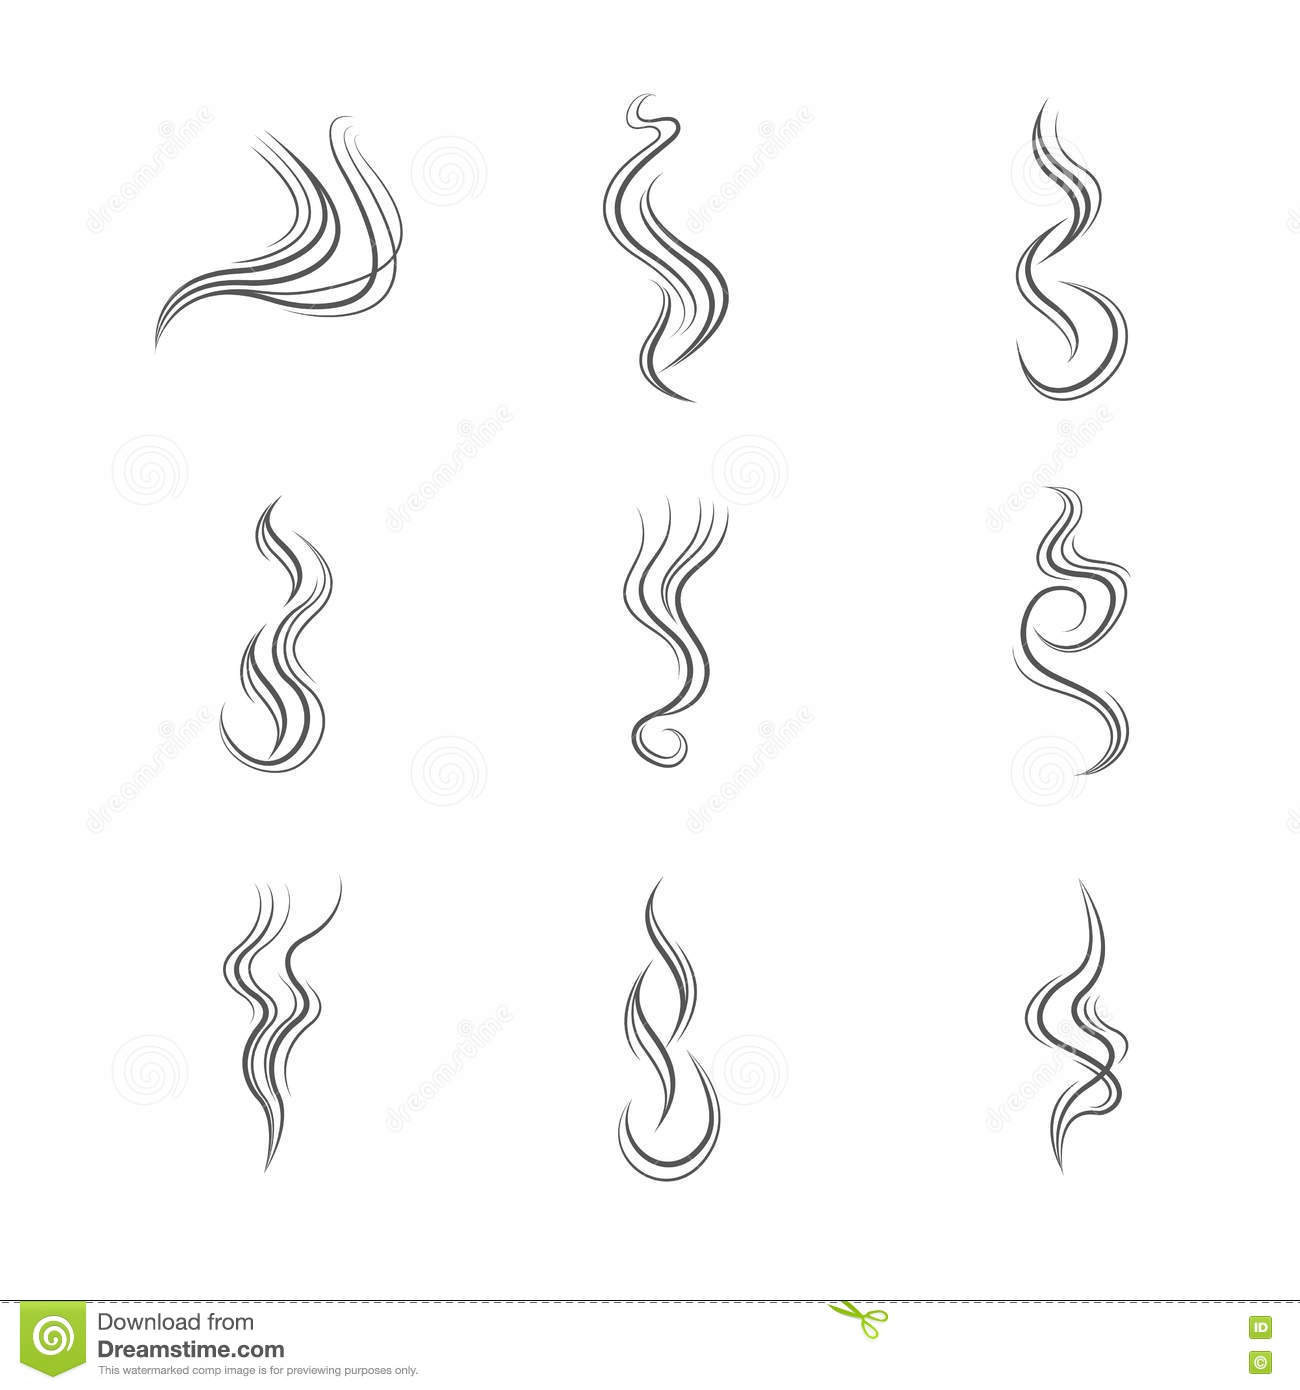 Drawing Vector Lines : Smoke lines vector set stock illustration of